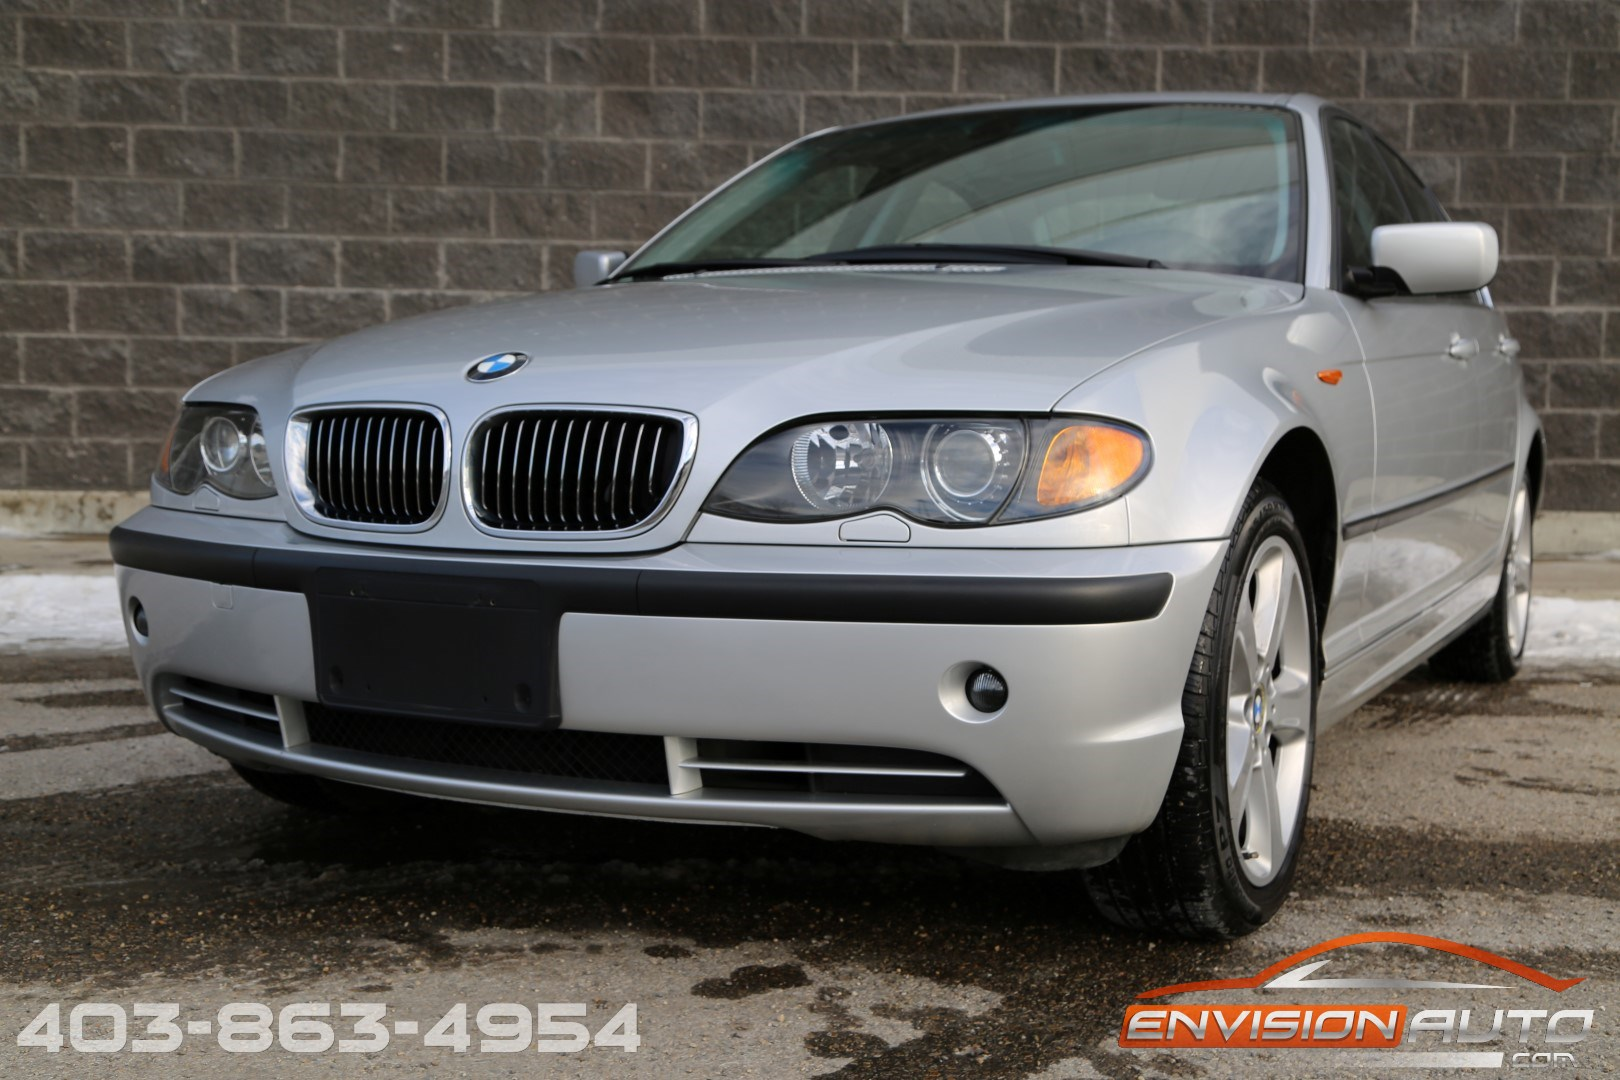 2005 bmw 330xi sedan awd sport harman kardon only 40 800kms